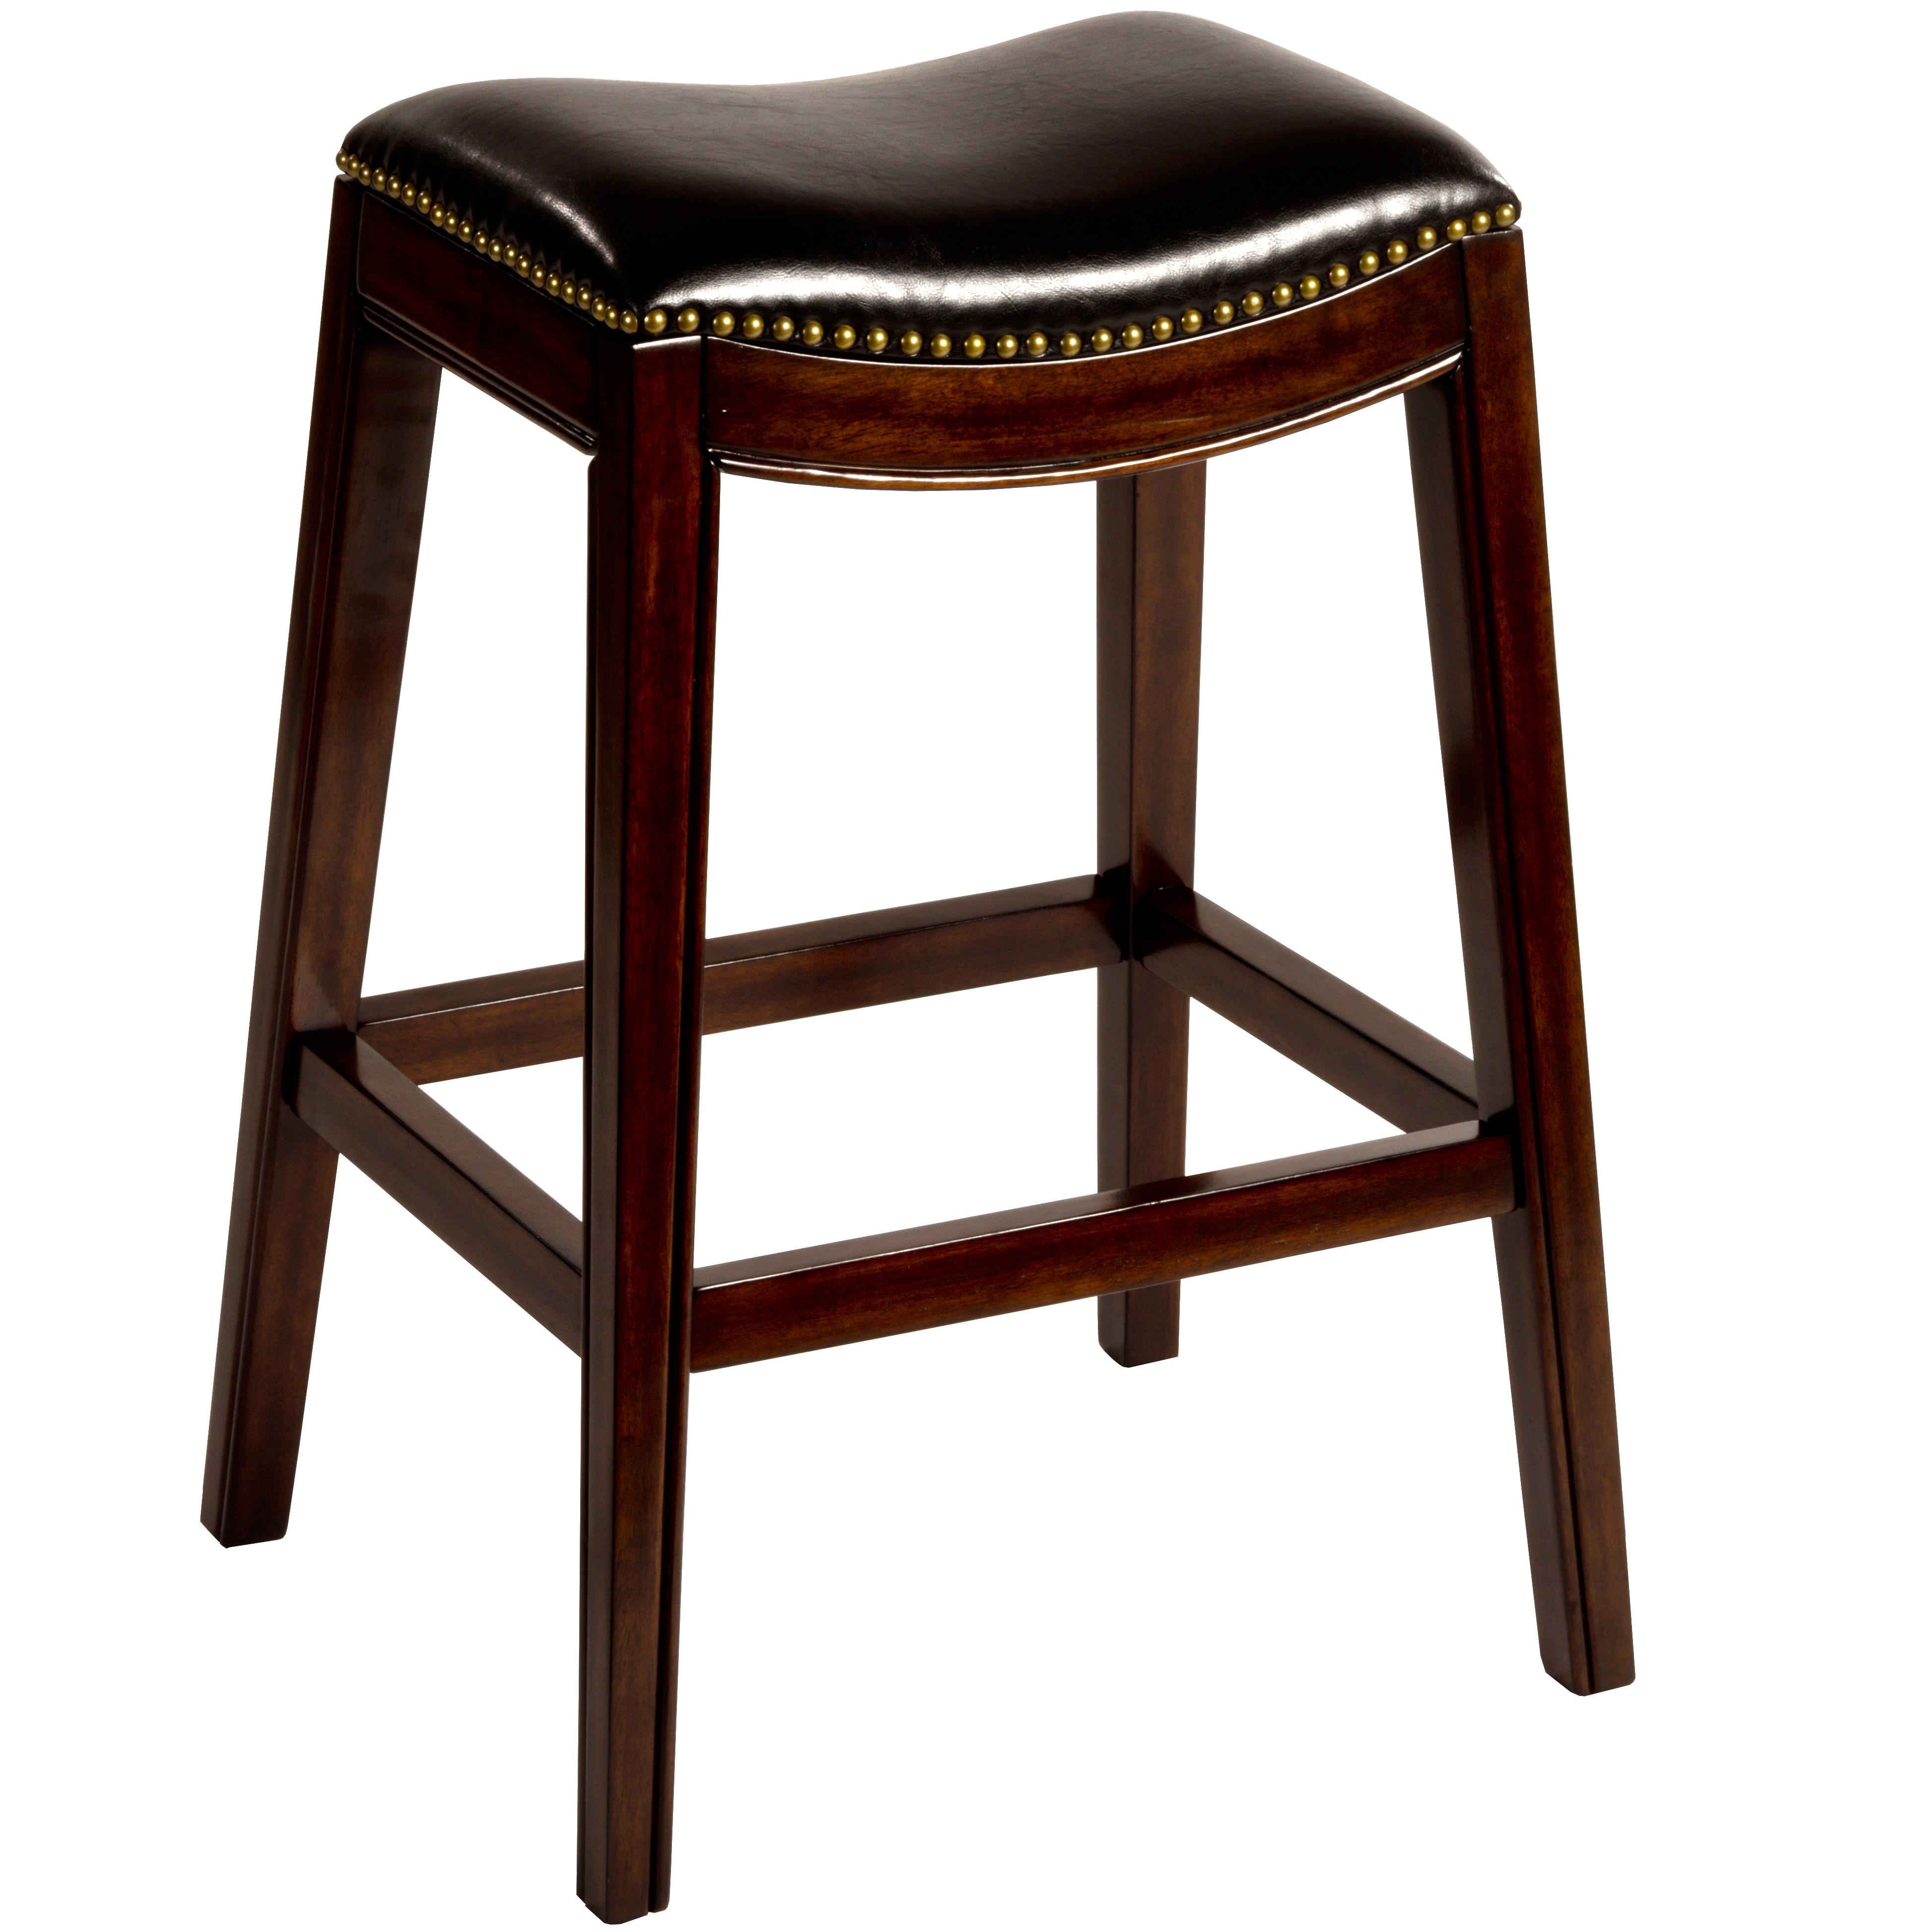 "Saddle Bar Stools Hillsdale Backless Bar Stools 30"" Sorella Saddle Backless"